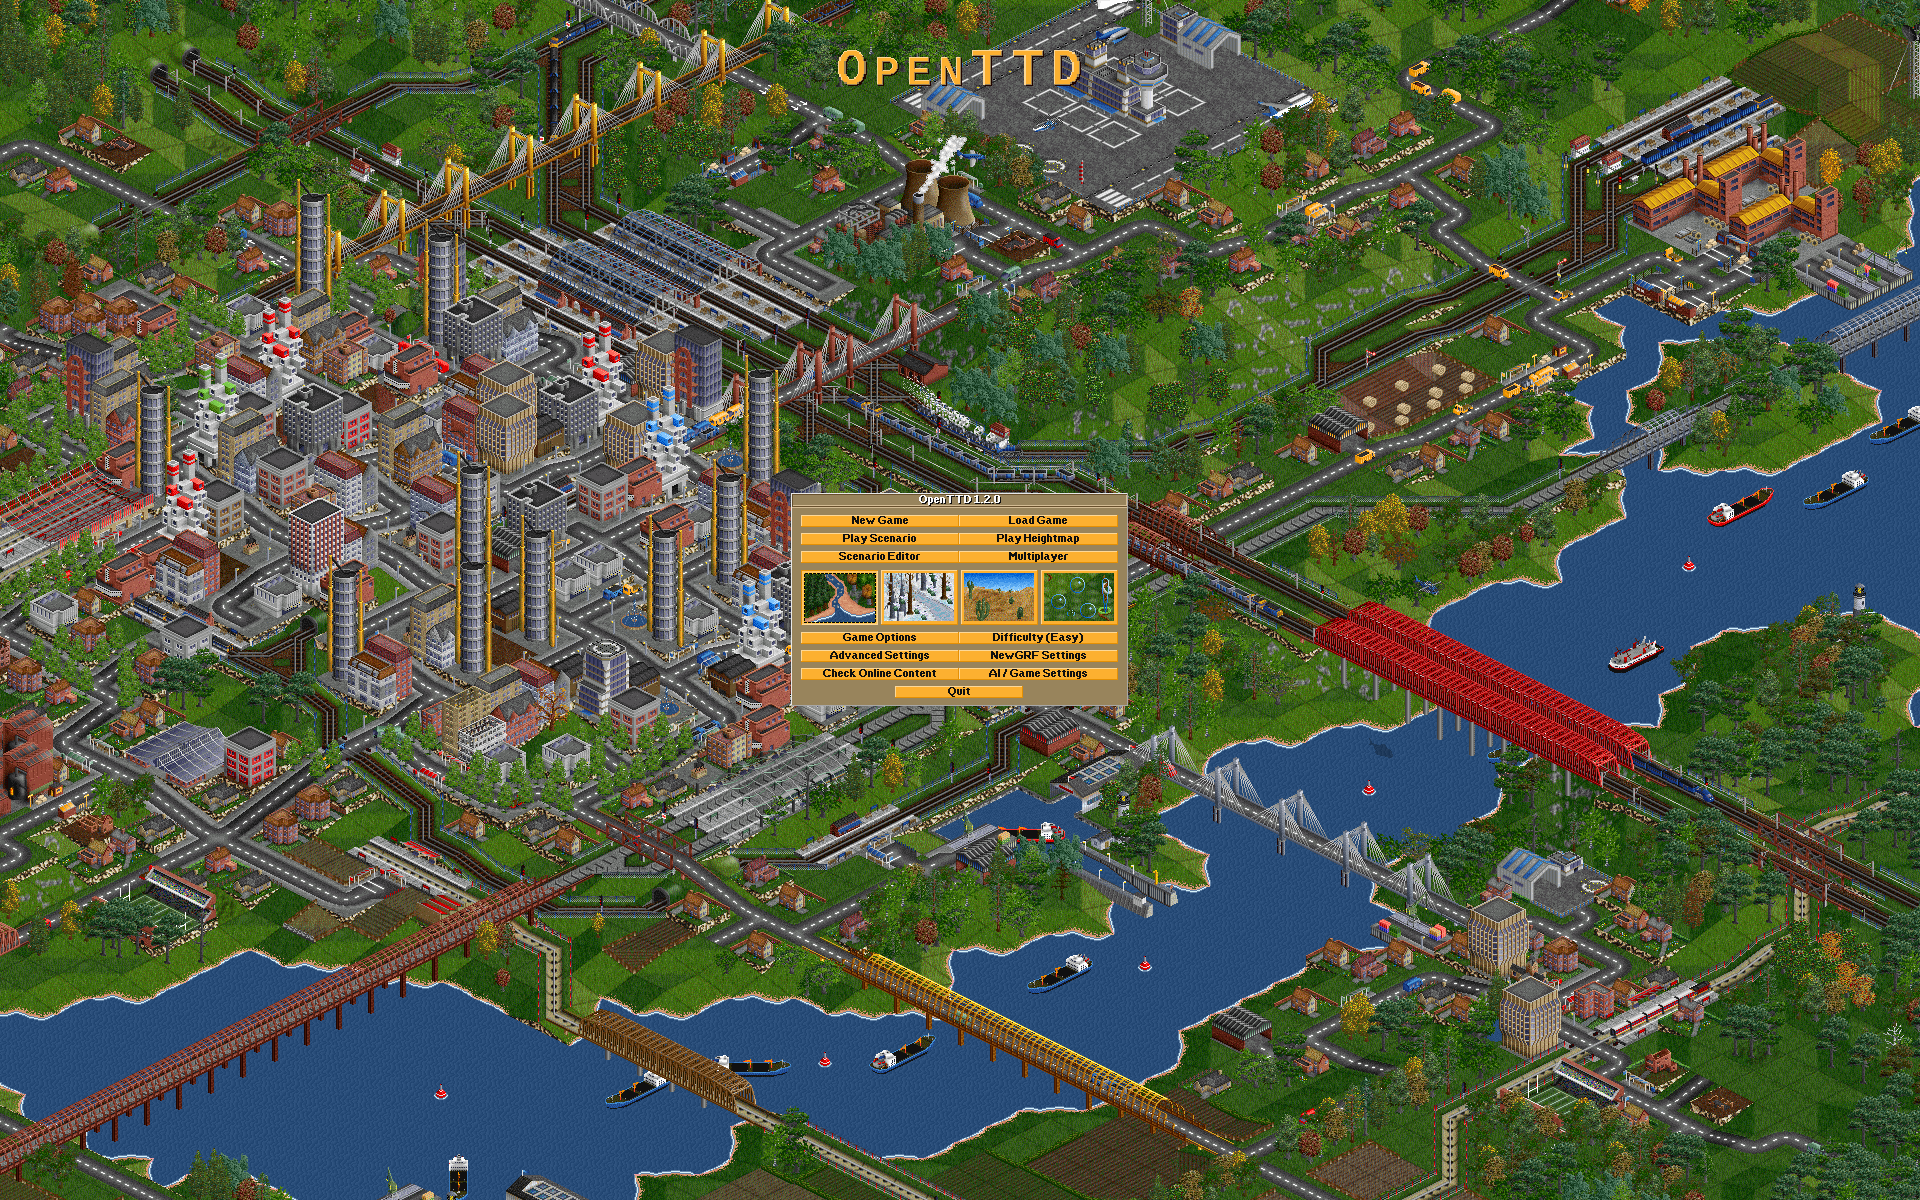 The title screen from OpenTTD 1.2